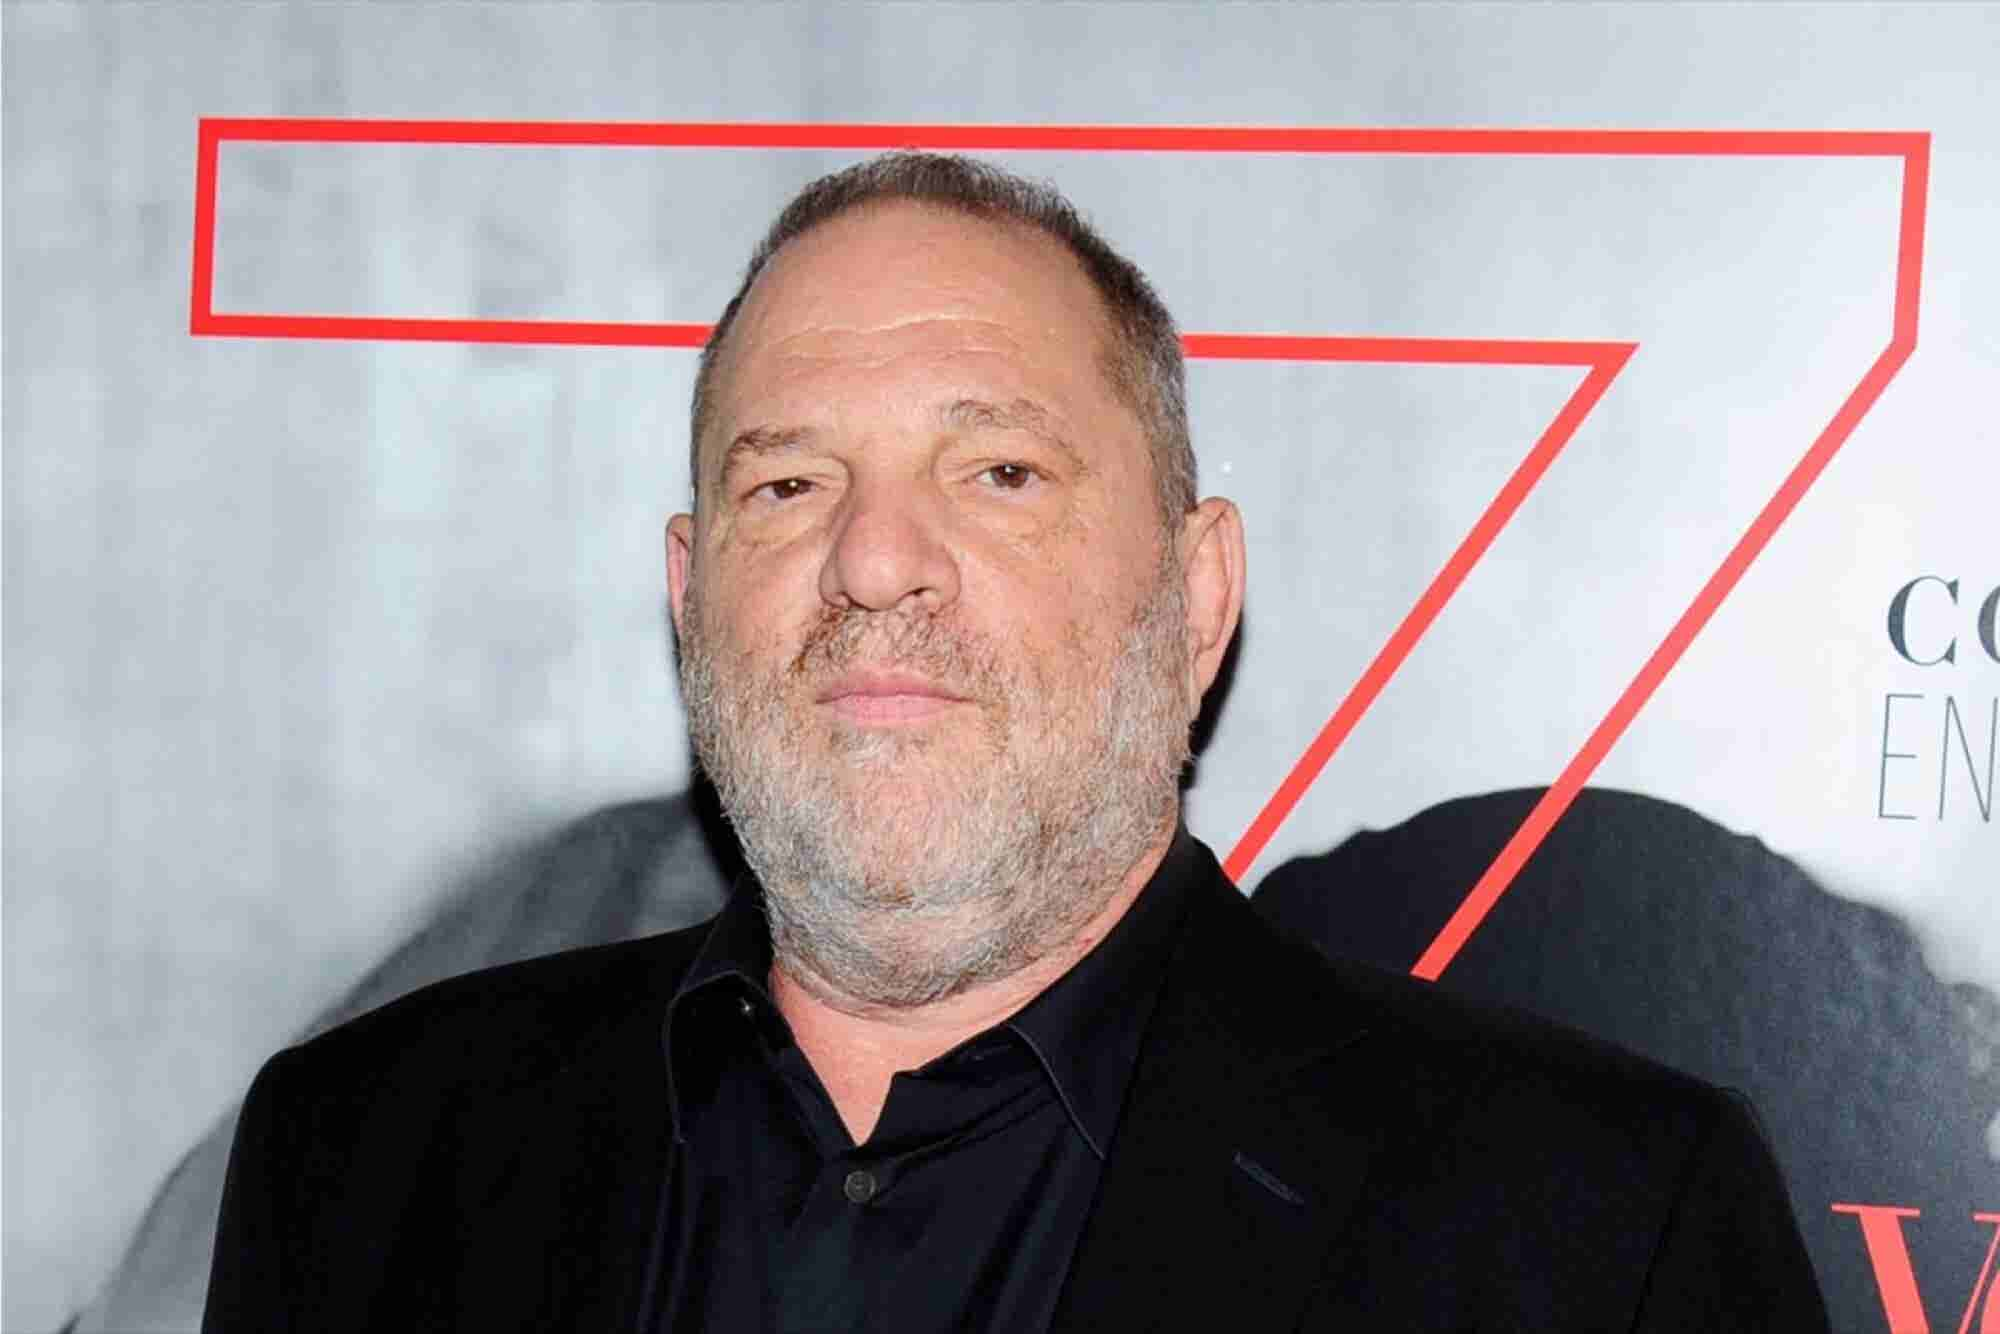 The Harvey Weinstein Scandal Is a Clarion Call to Men In Positions of Leadership